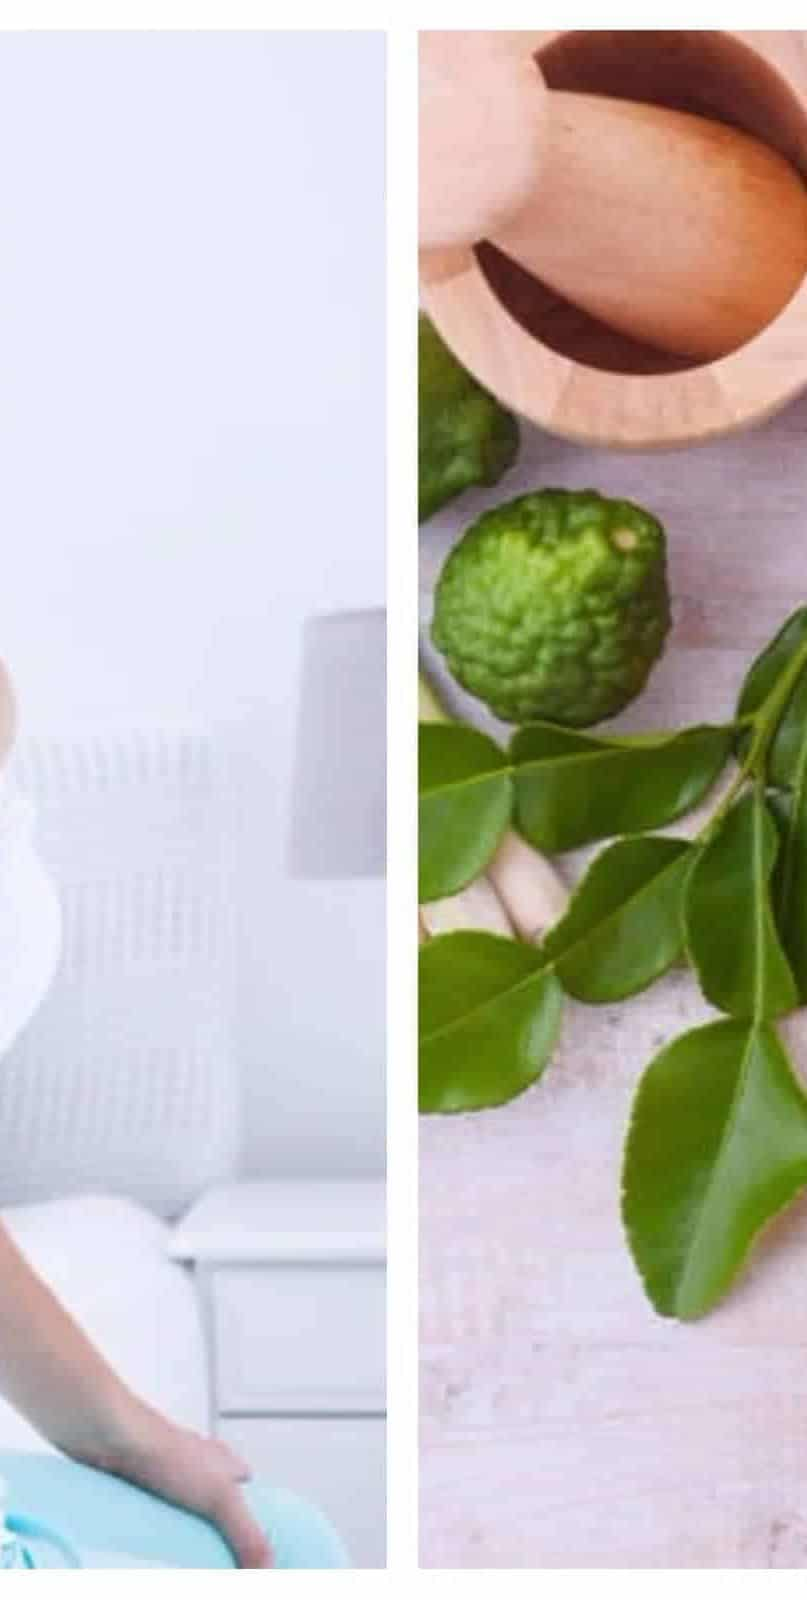 10 Natural Alternatives to Deal With Back Pains After Everything Else Failed